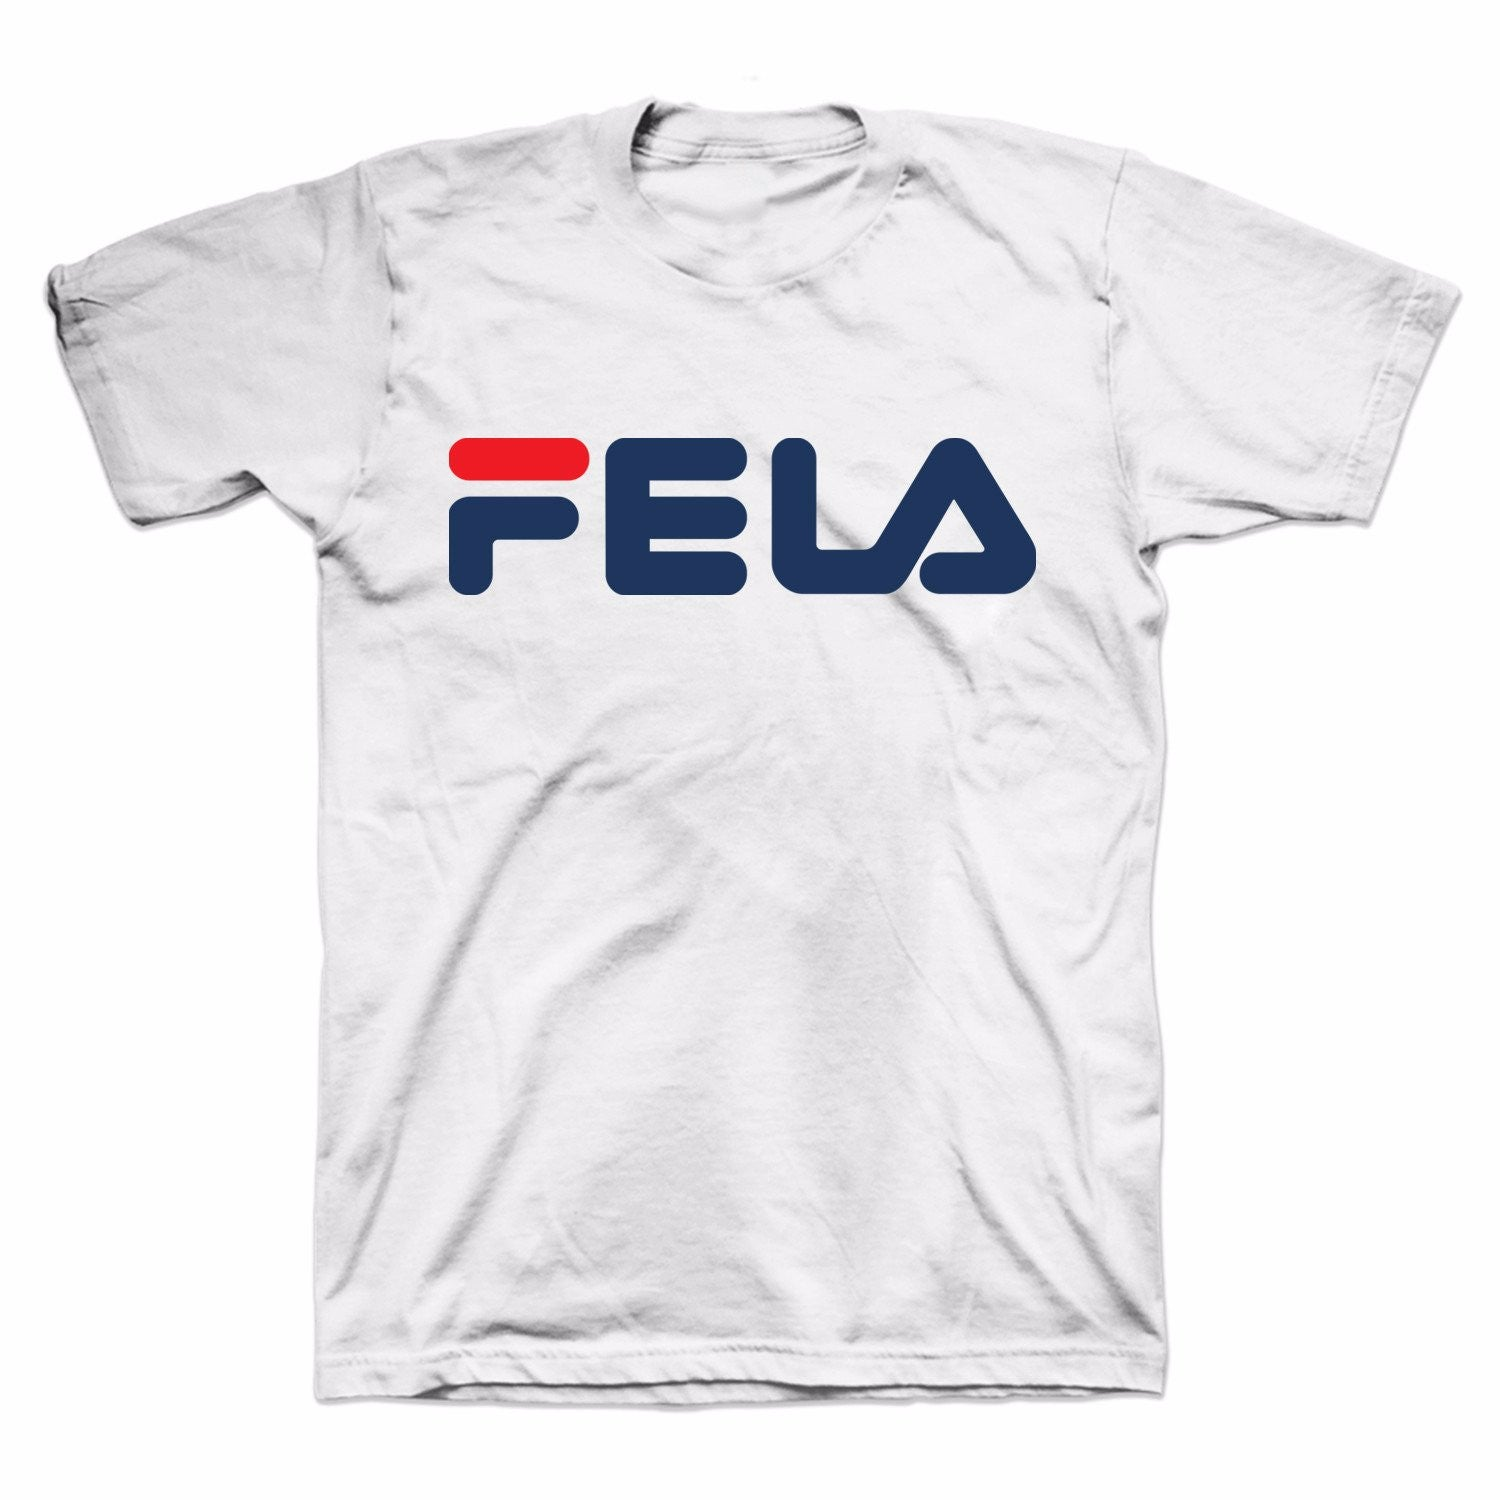 The Fela Sport T-Shirt - White